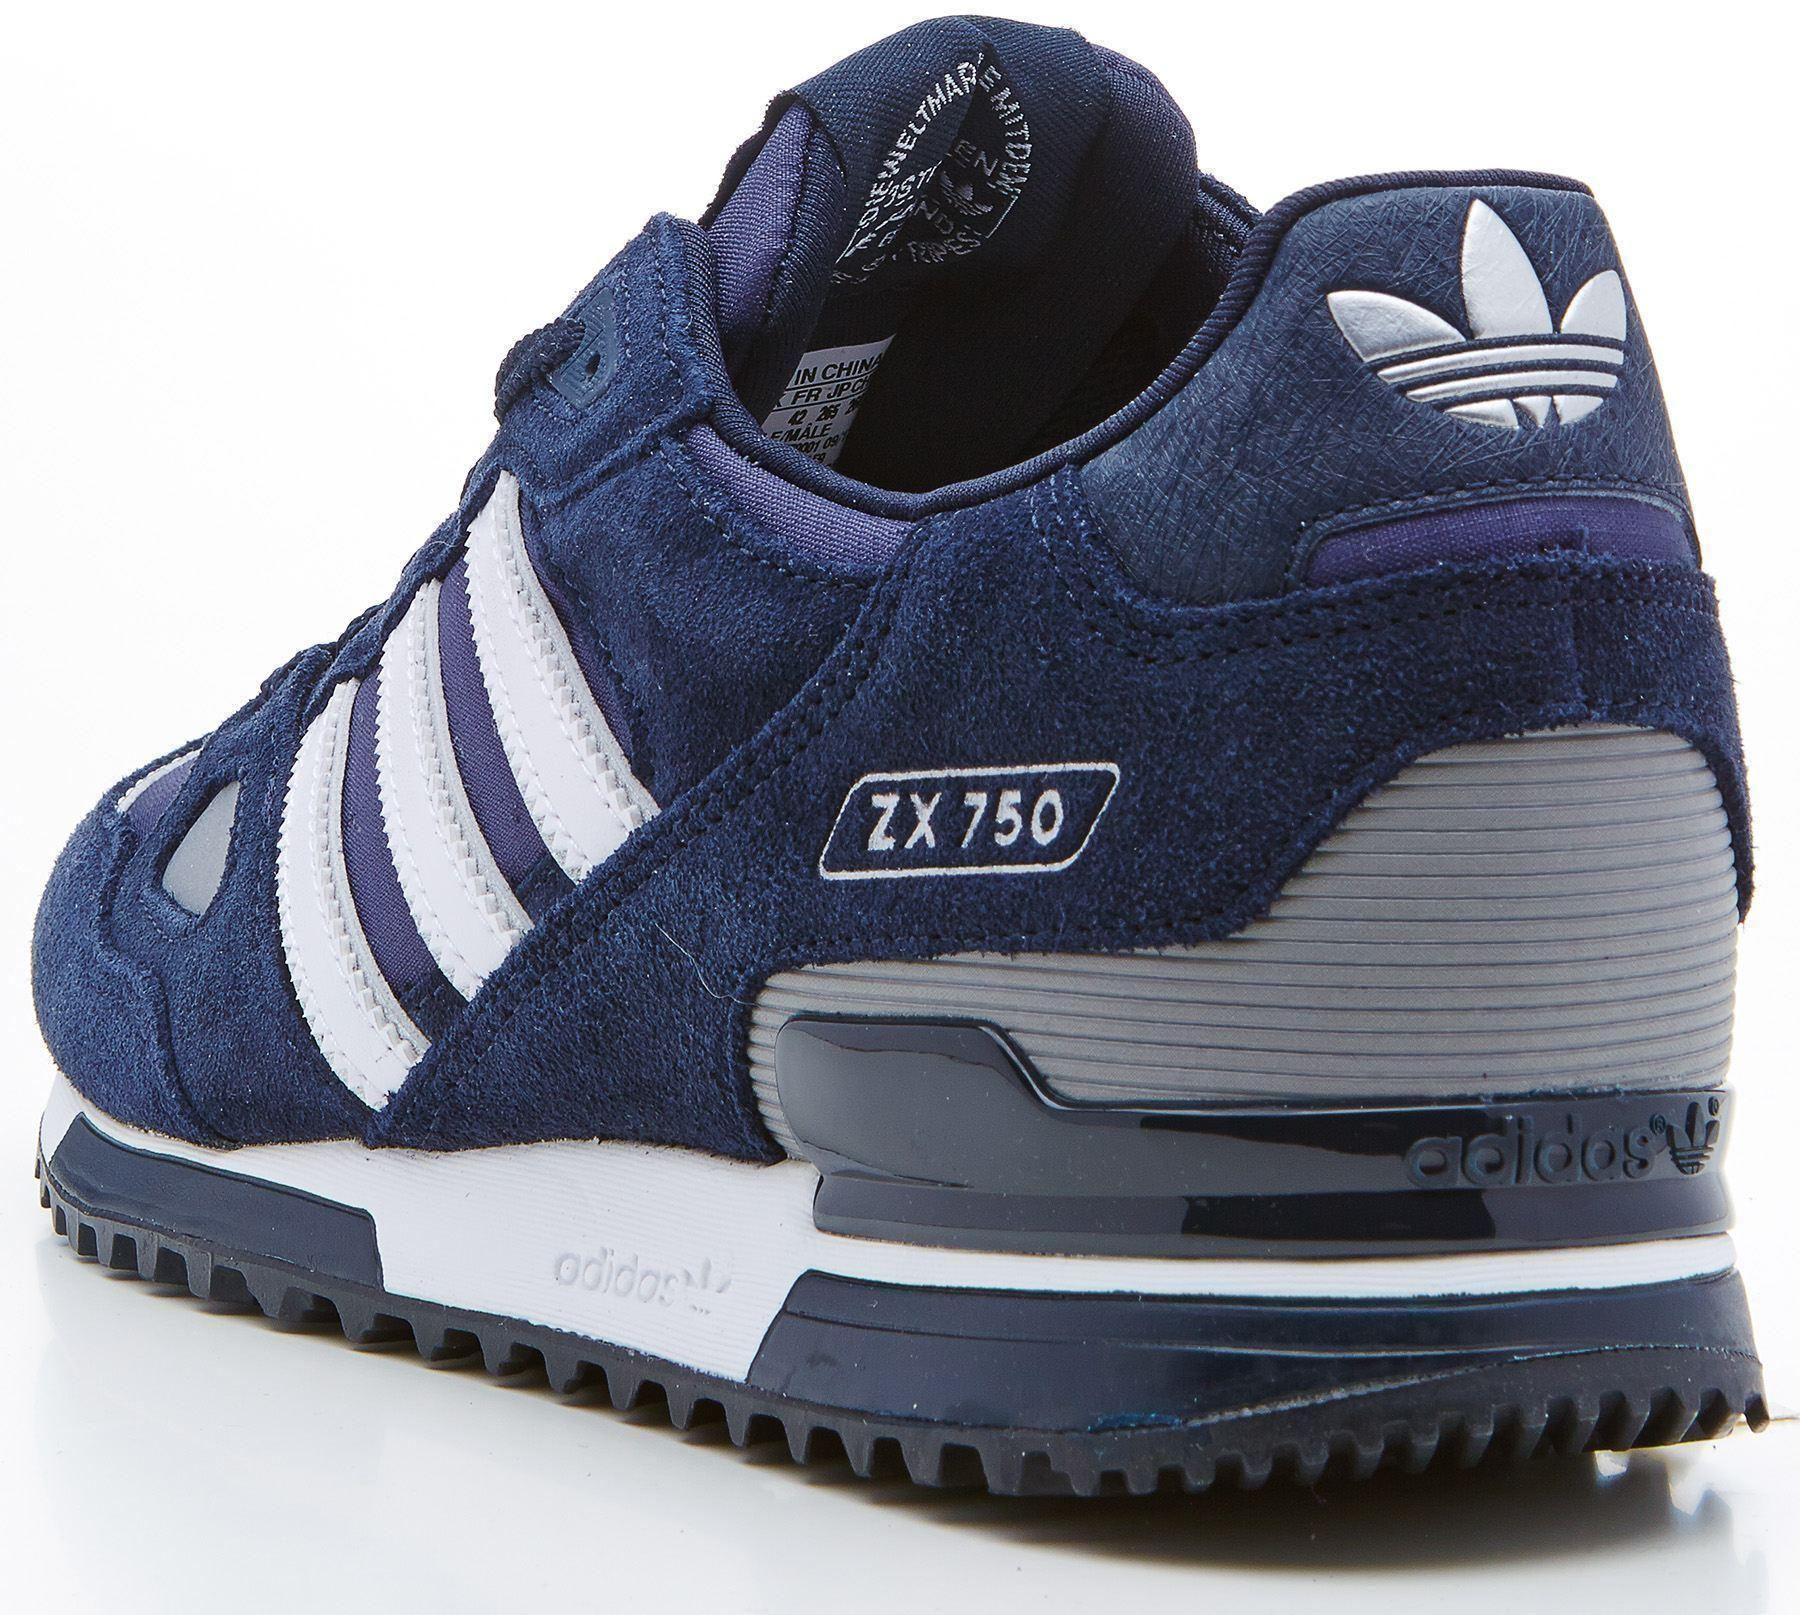 brand new 30c7a 33ad0 adidas zx 750 blue silver